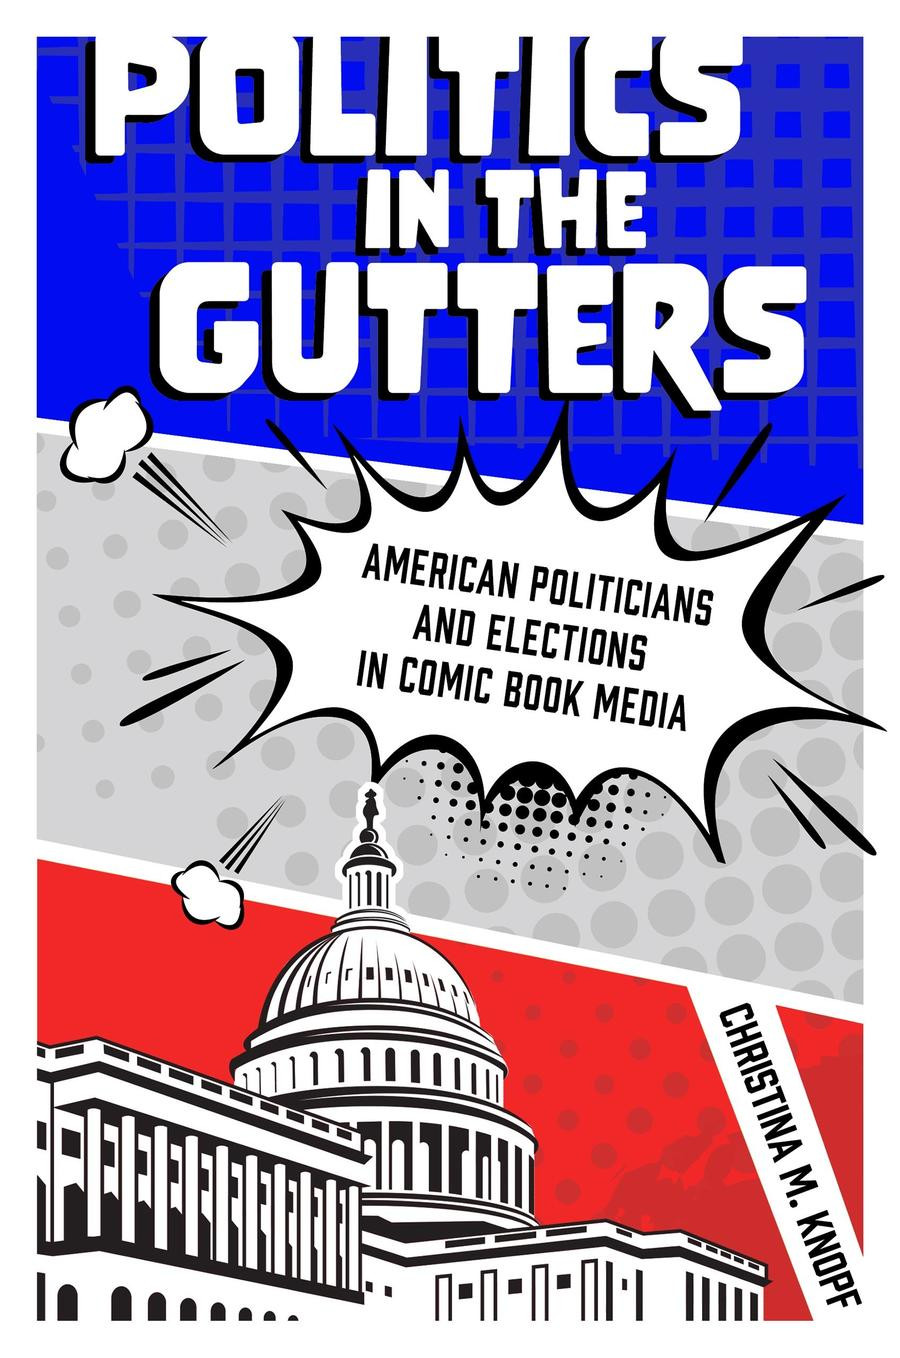 Up Next: Politics in the Gutters by Christina M. Knopf